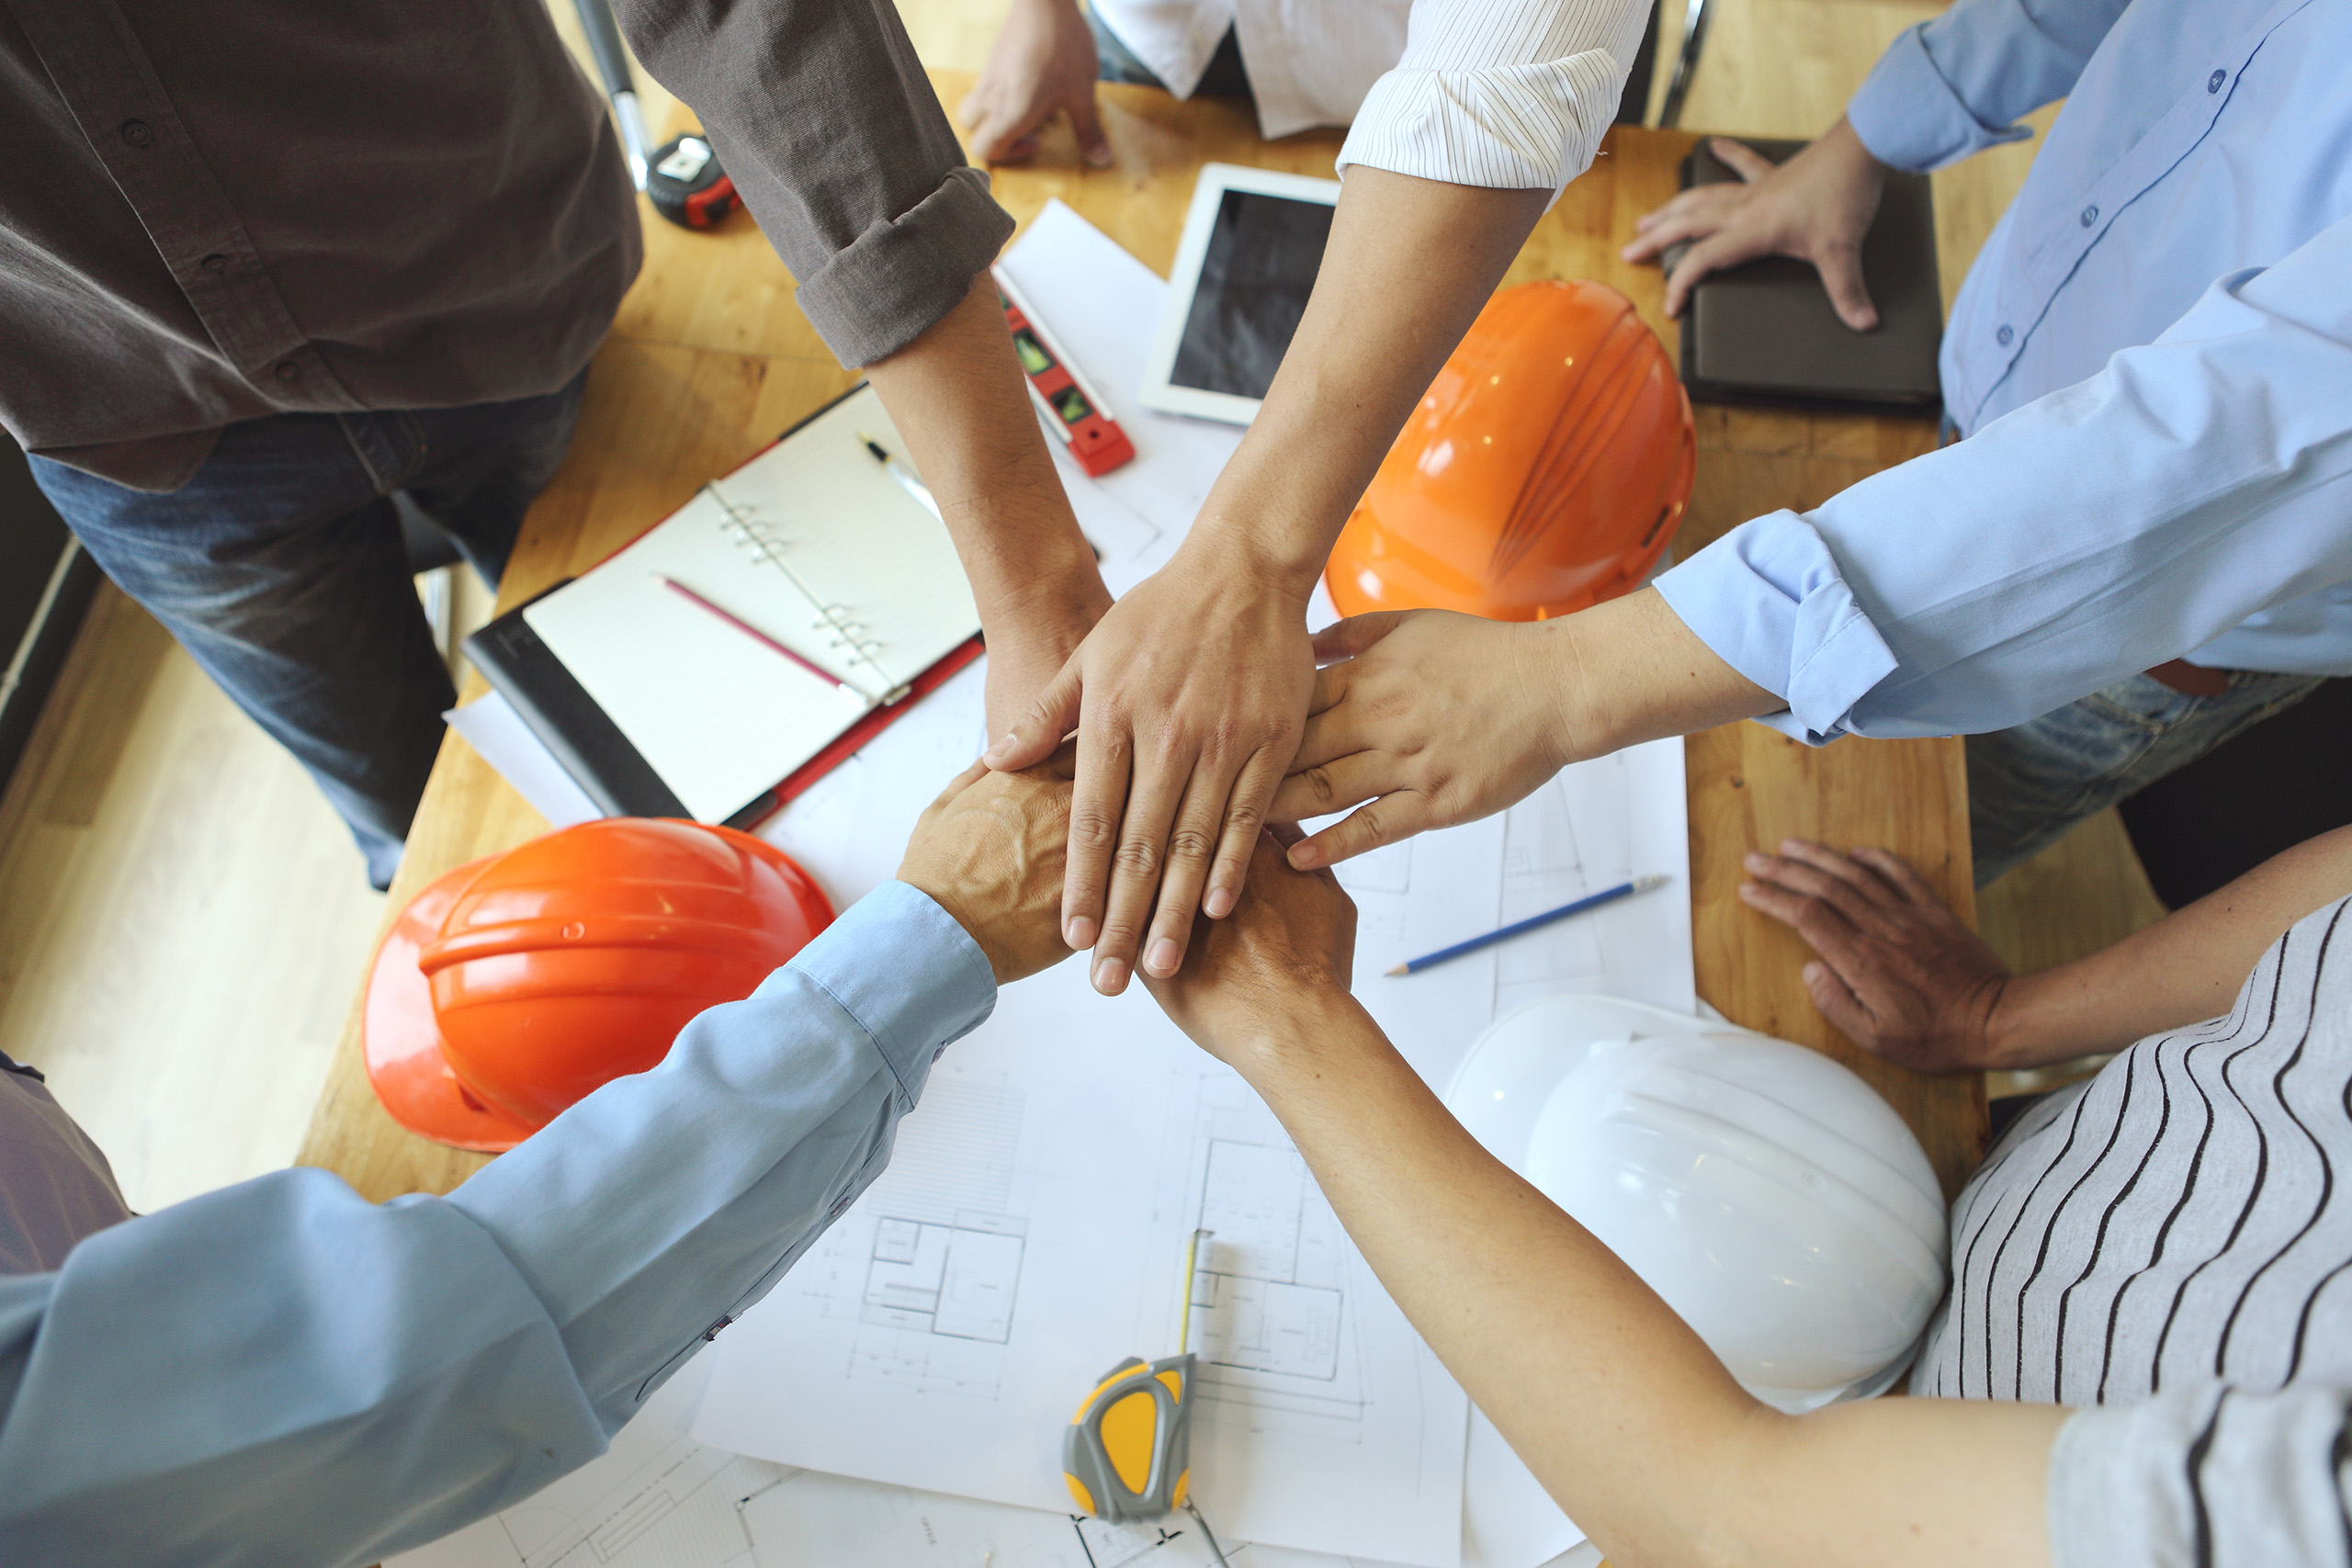 workers joining hands